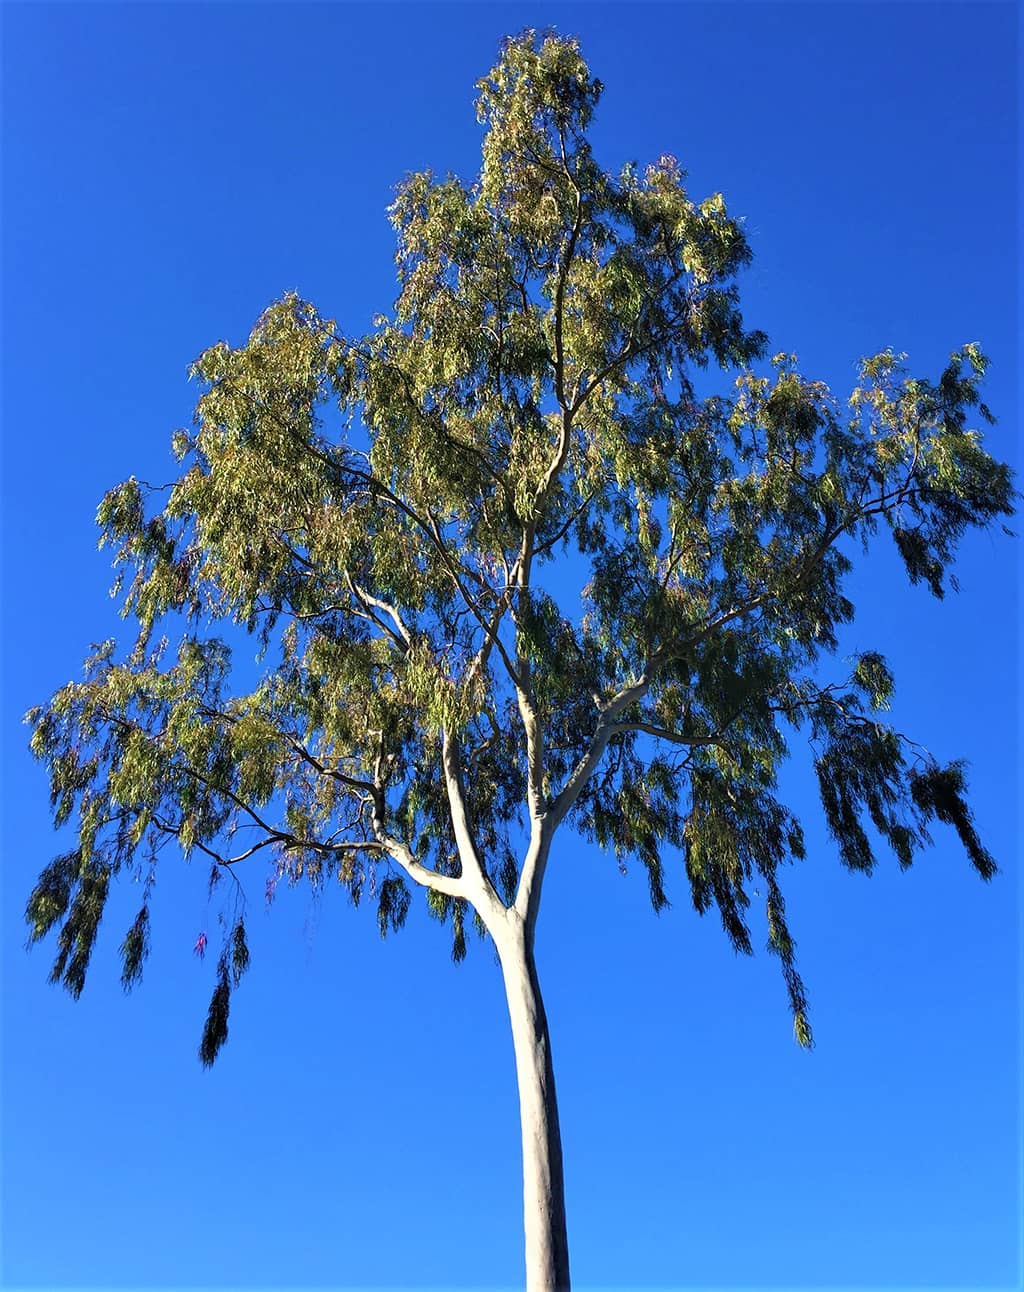 Lemon Scented Gum tree by David Gress